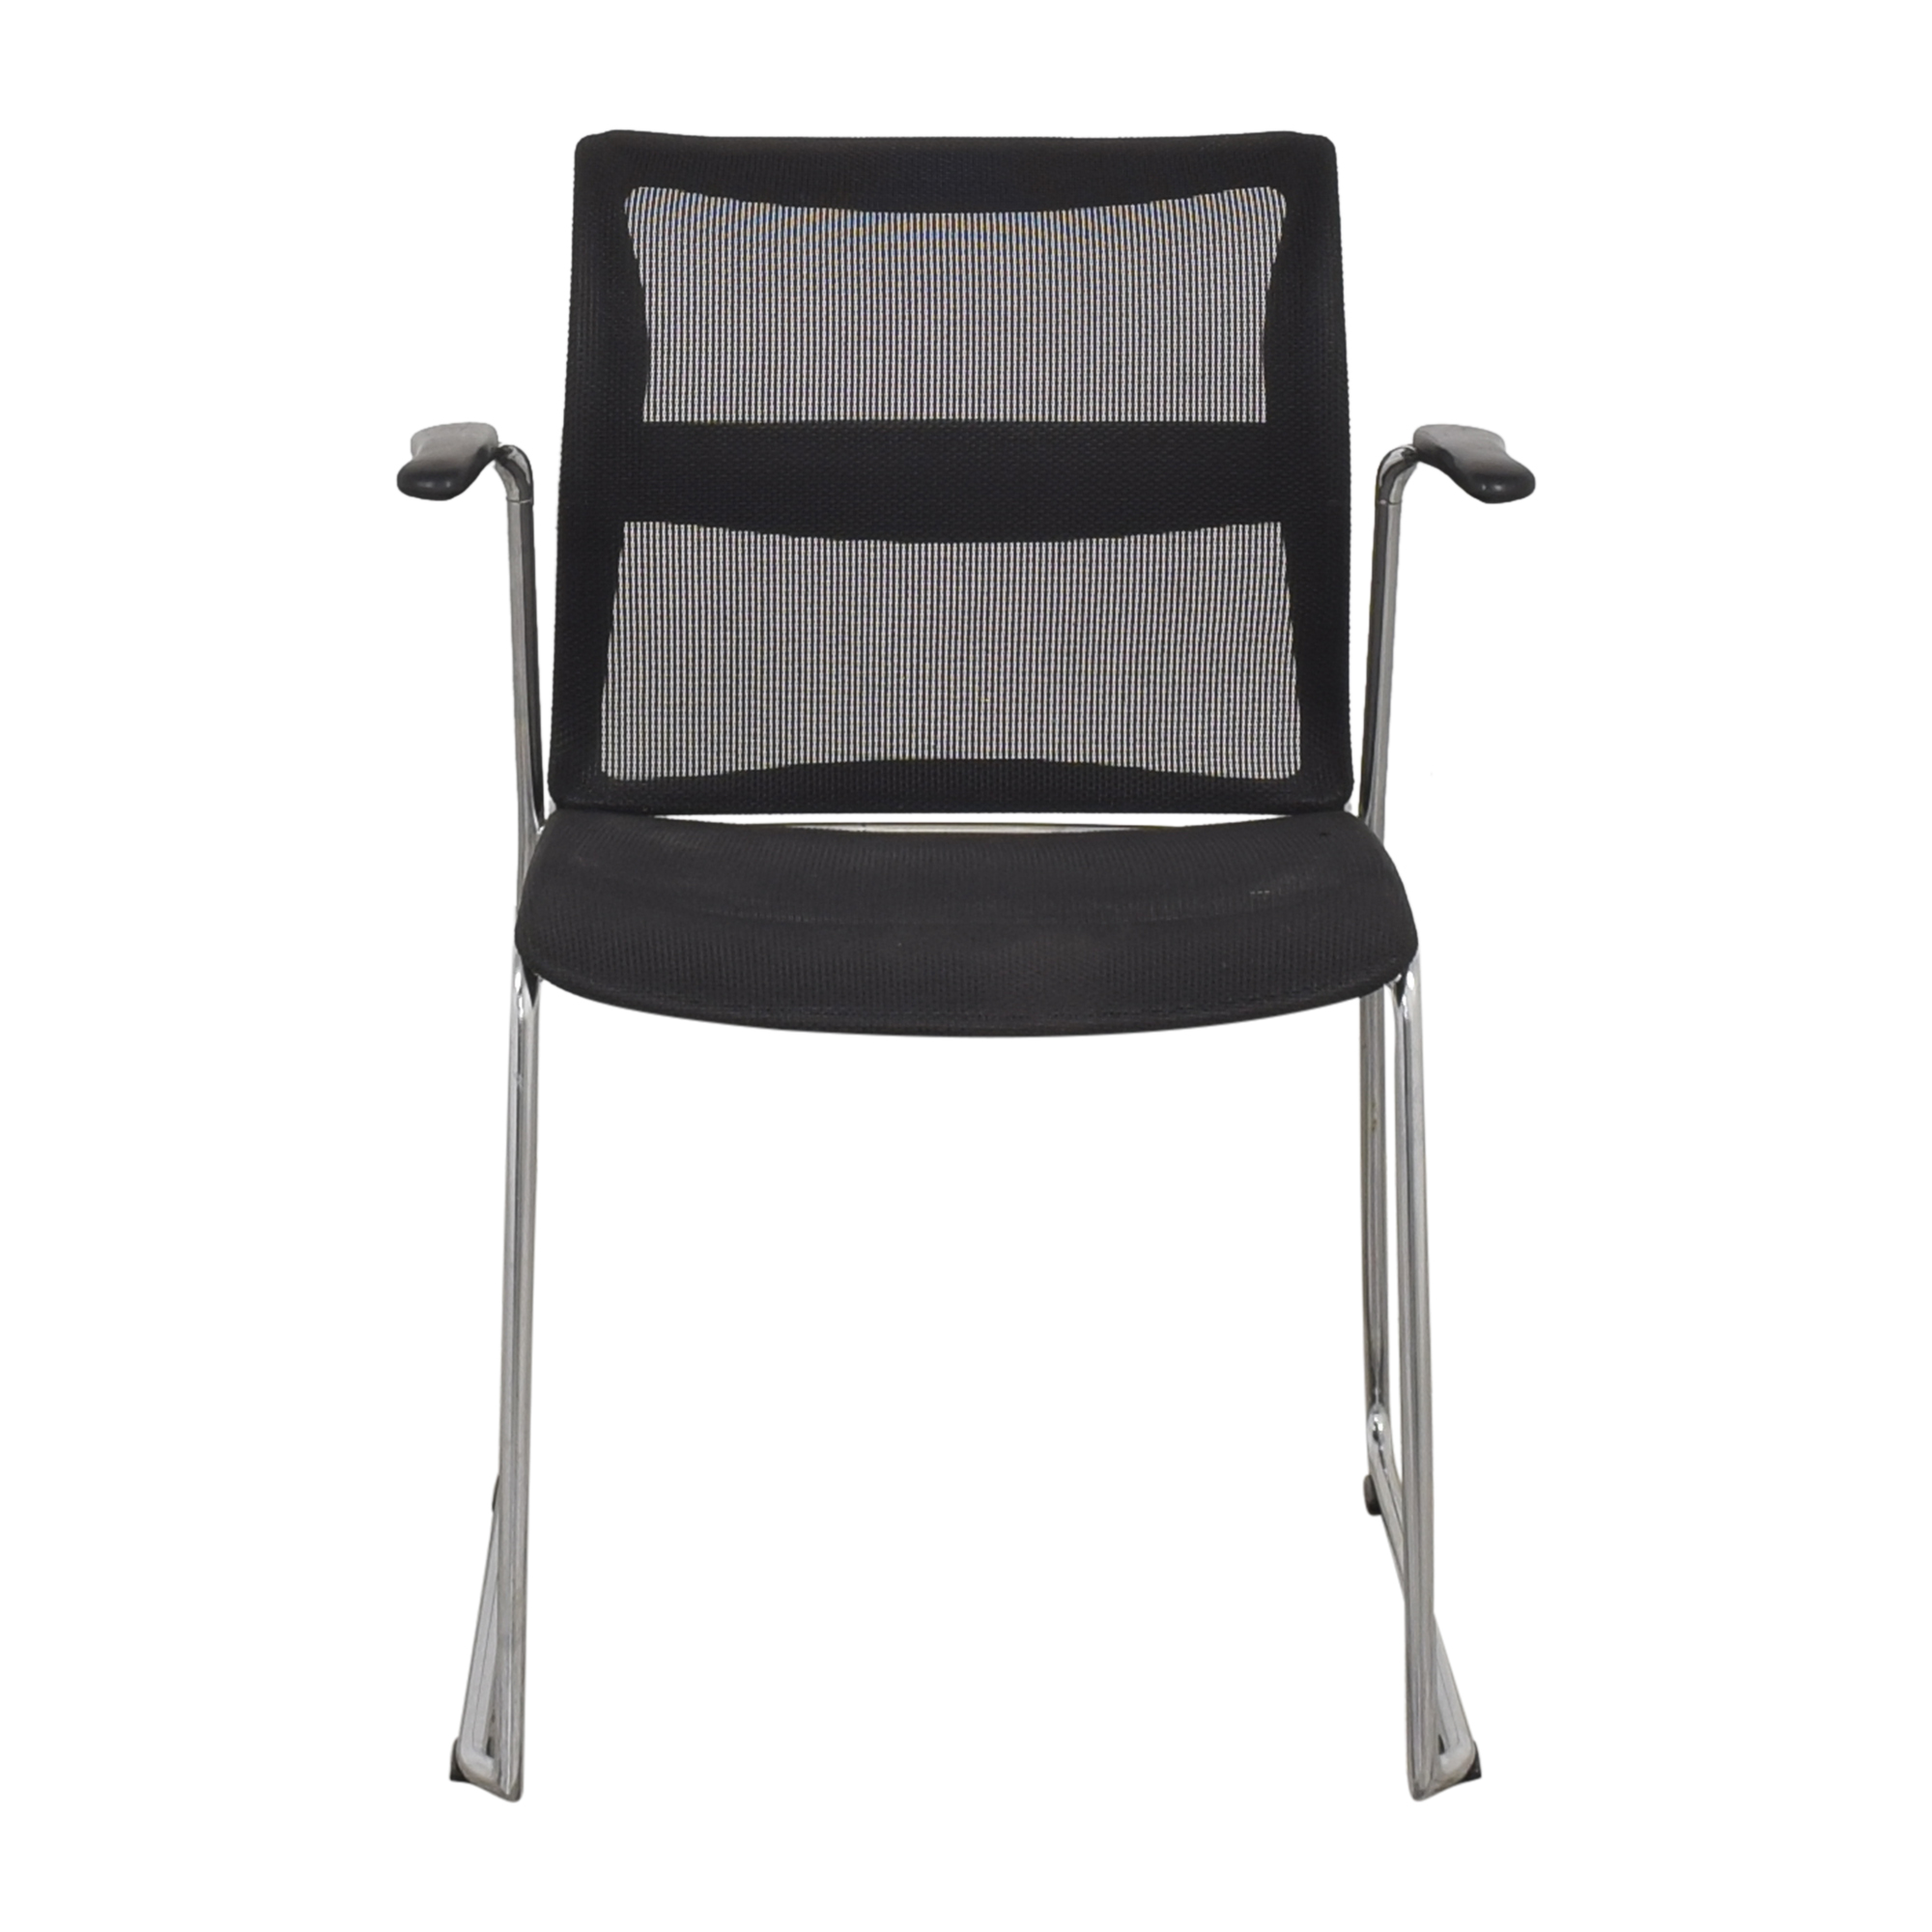 Stylex Stylex Zephyr Stacking Arm Chair price